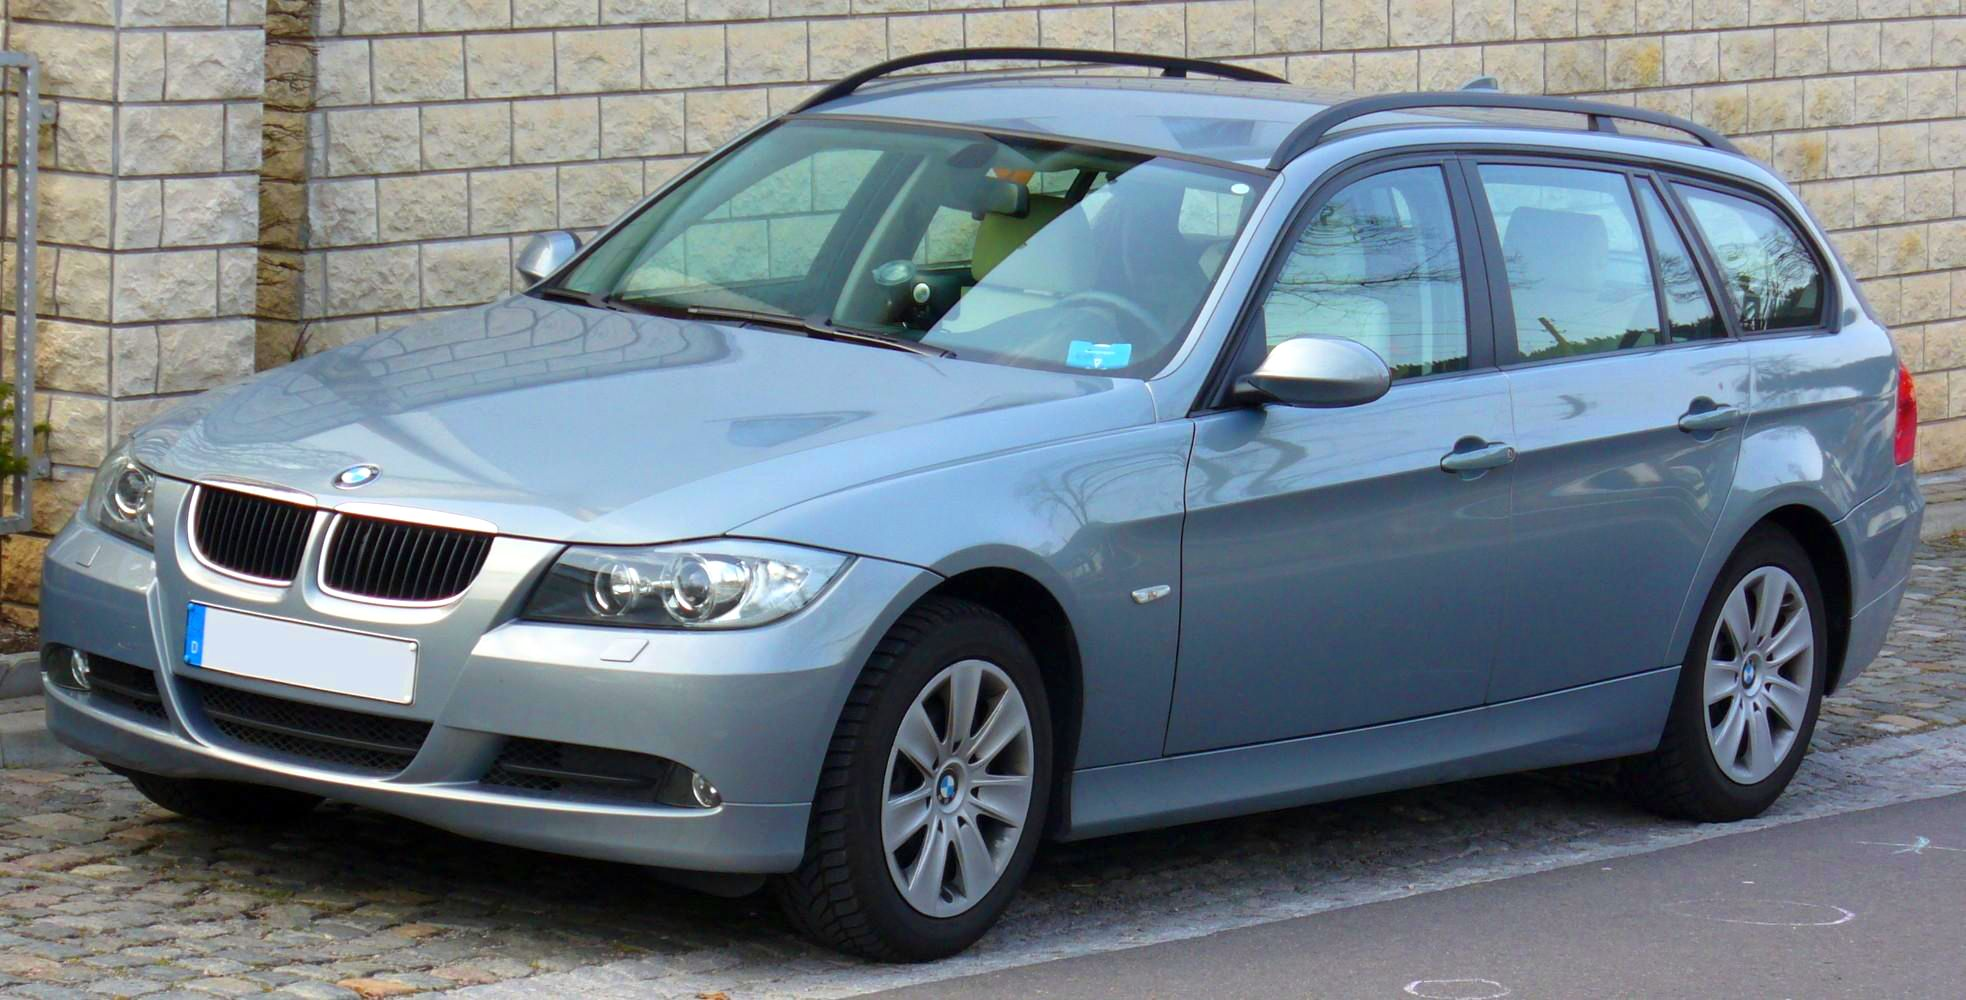 Bmw E90 Wiki >> File:BMW E90 Touring.jpg - Wikimedia Commons